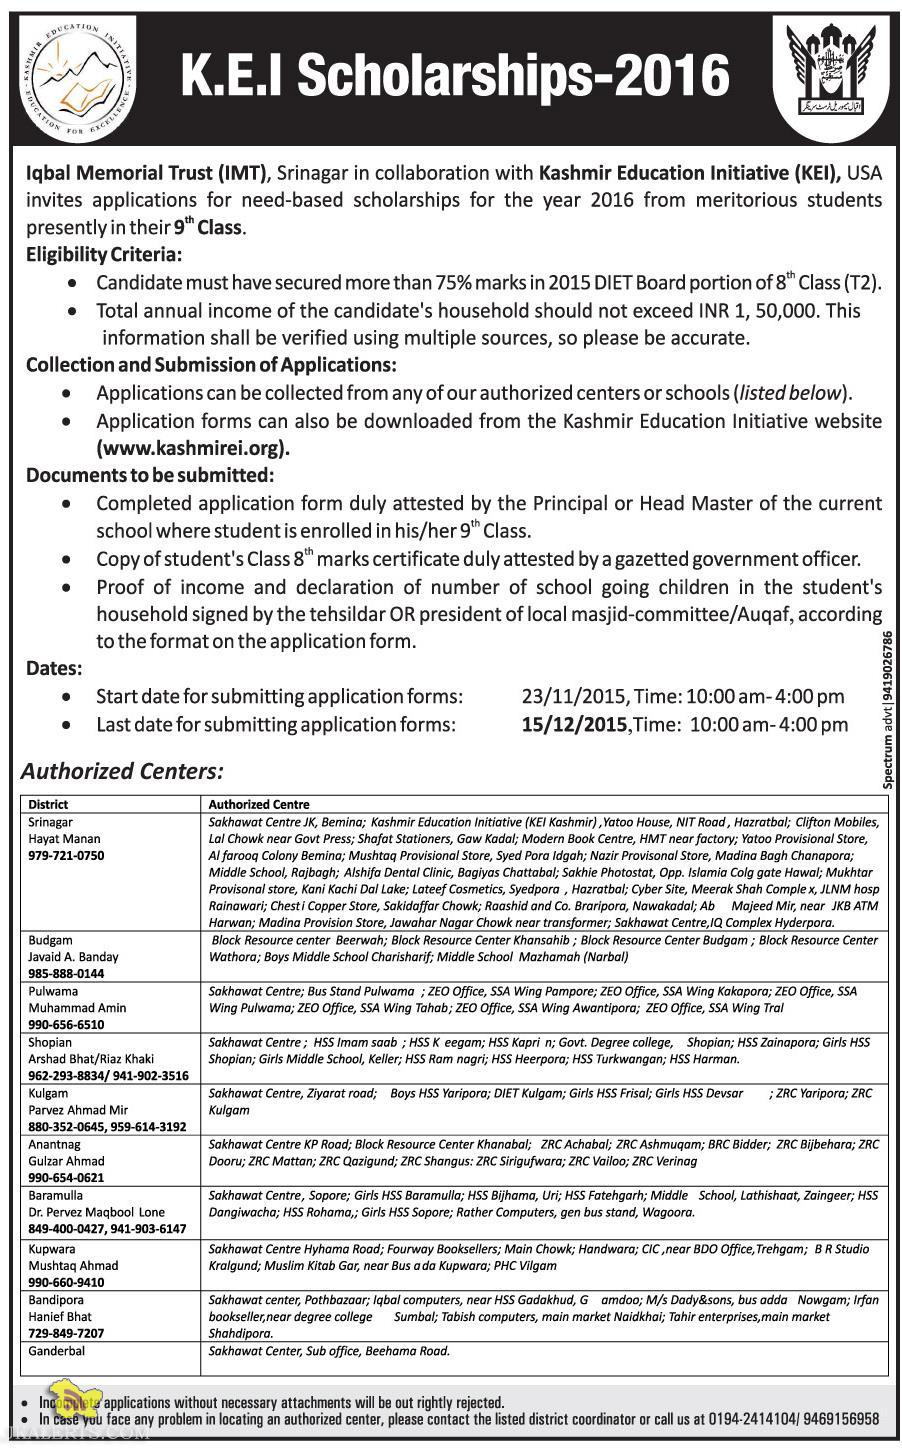 K.E.I Scholarships 2016 Authorized Centers, Eligibility Criteria, Collection and Submission of Applications